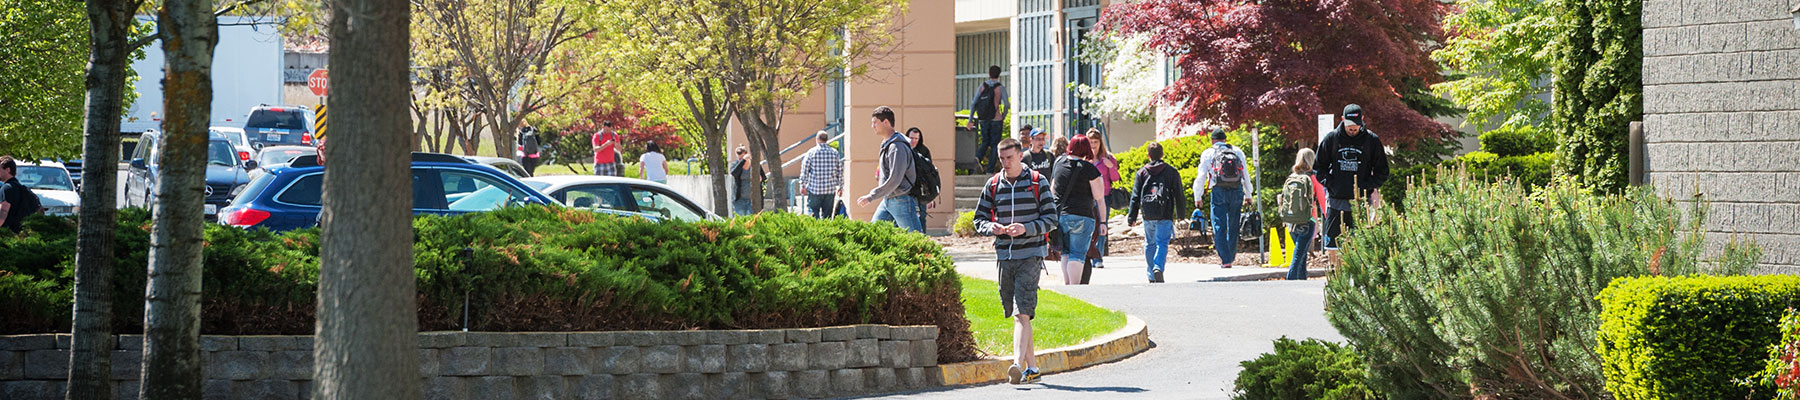 SCC Students Walking on Campus